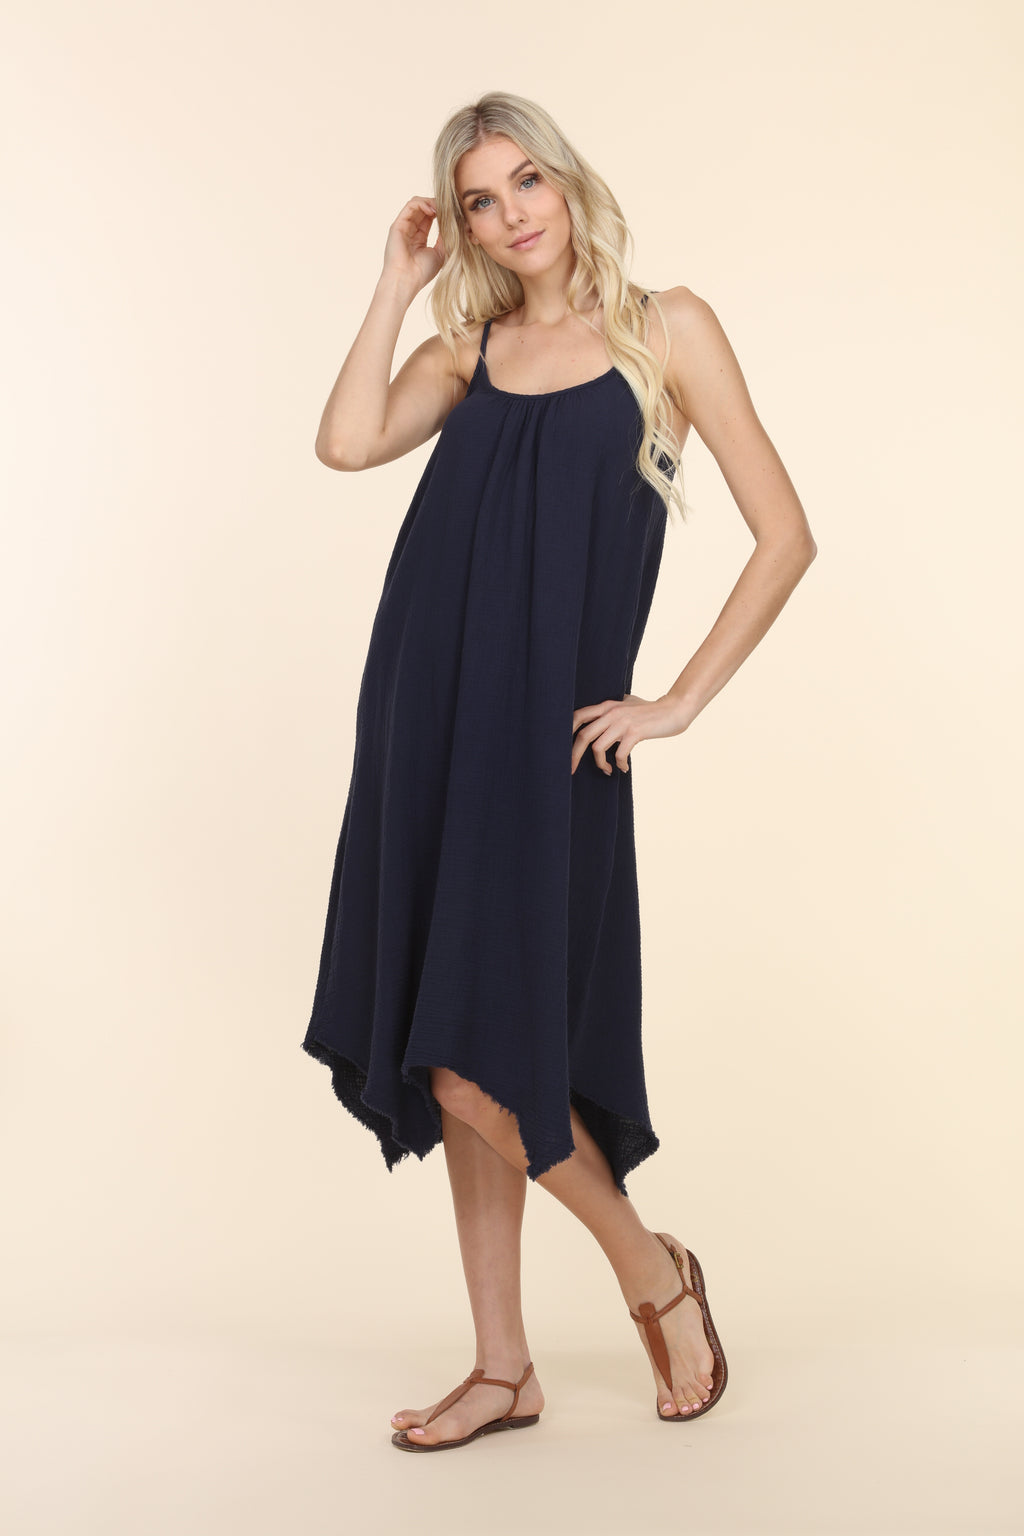 Sleeveless Gauze Dress - Navy